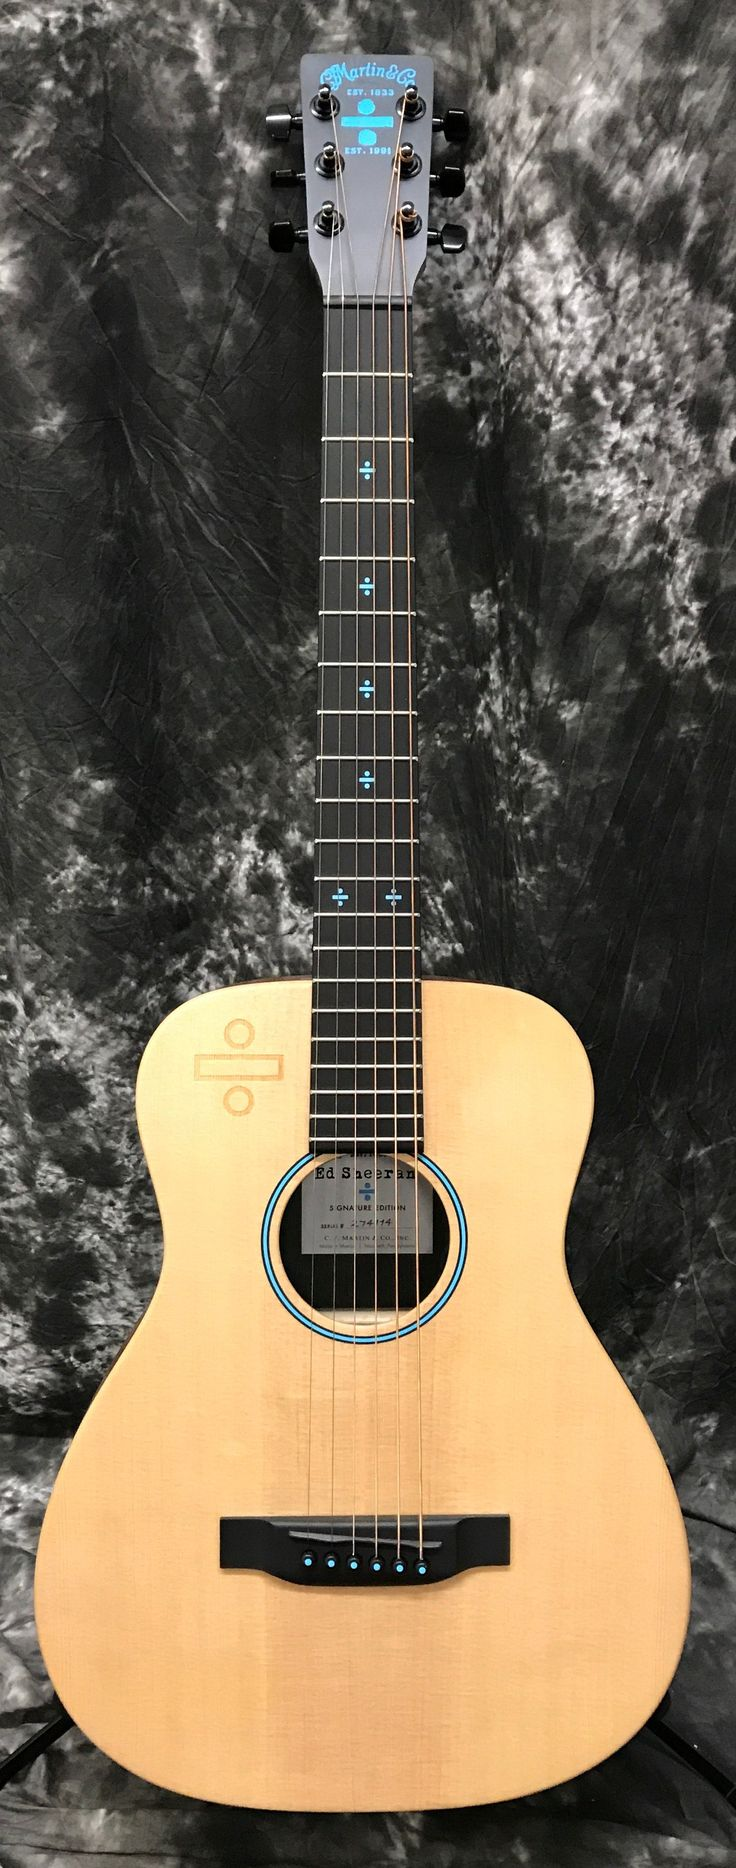 Martin Ed Sheeran 3 Divide ÷ Left Handed Signature Edition Little Martin Acoustic-Electric Guitar w/Gigbag